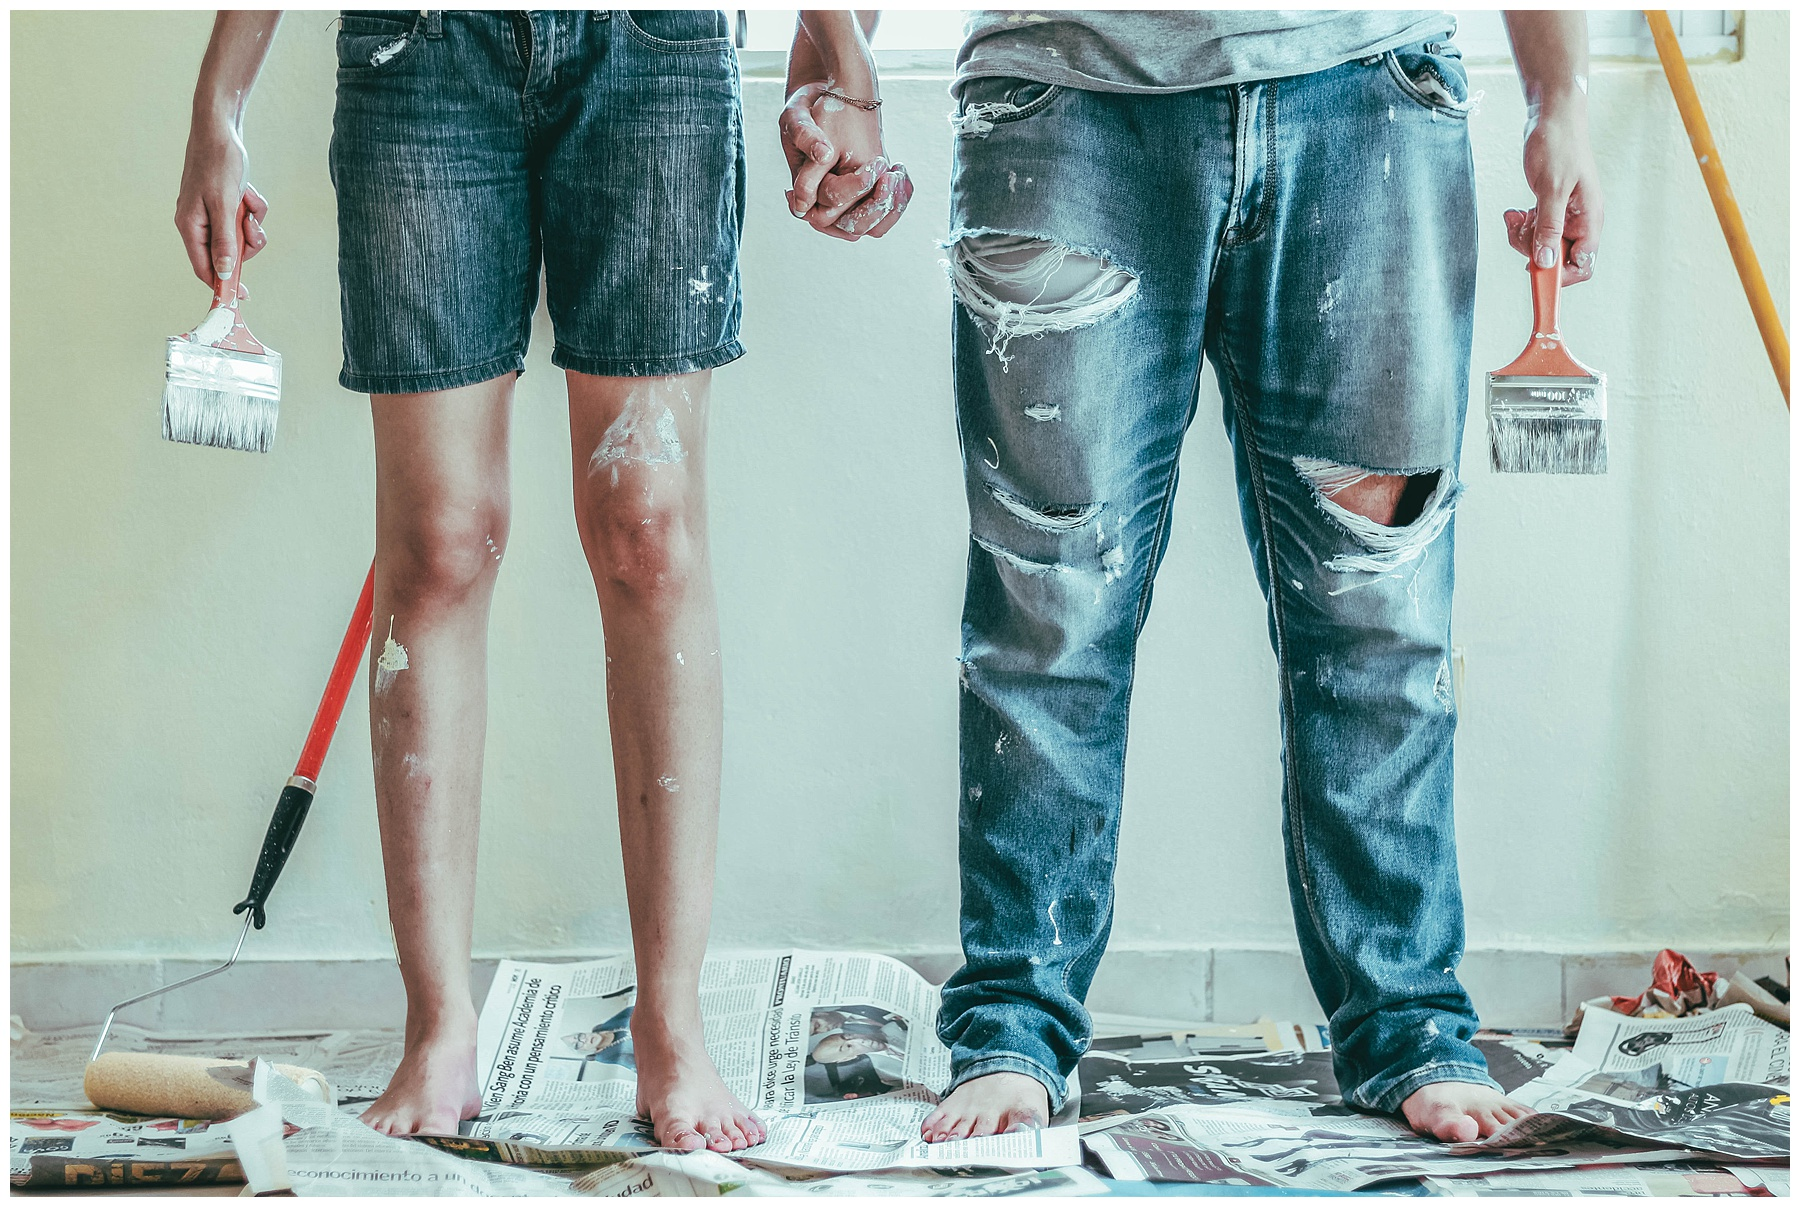 cropped picture from the waist down of a couple holding hands and paint brushes while standing on newspapers covered in paint for a home remodel